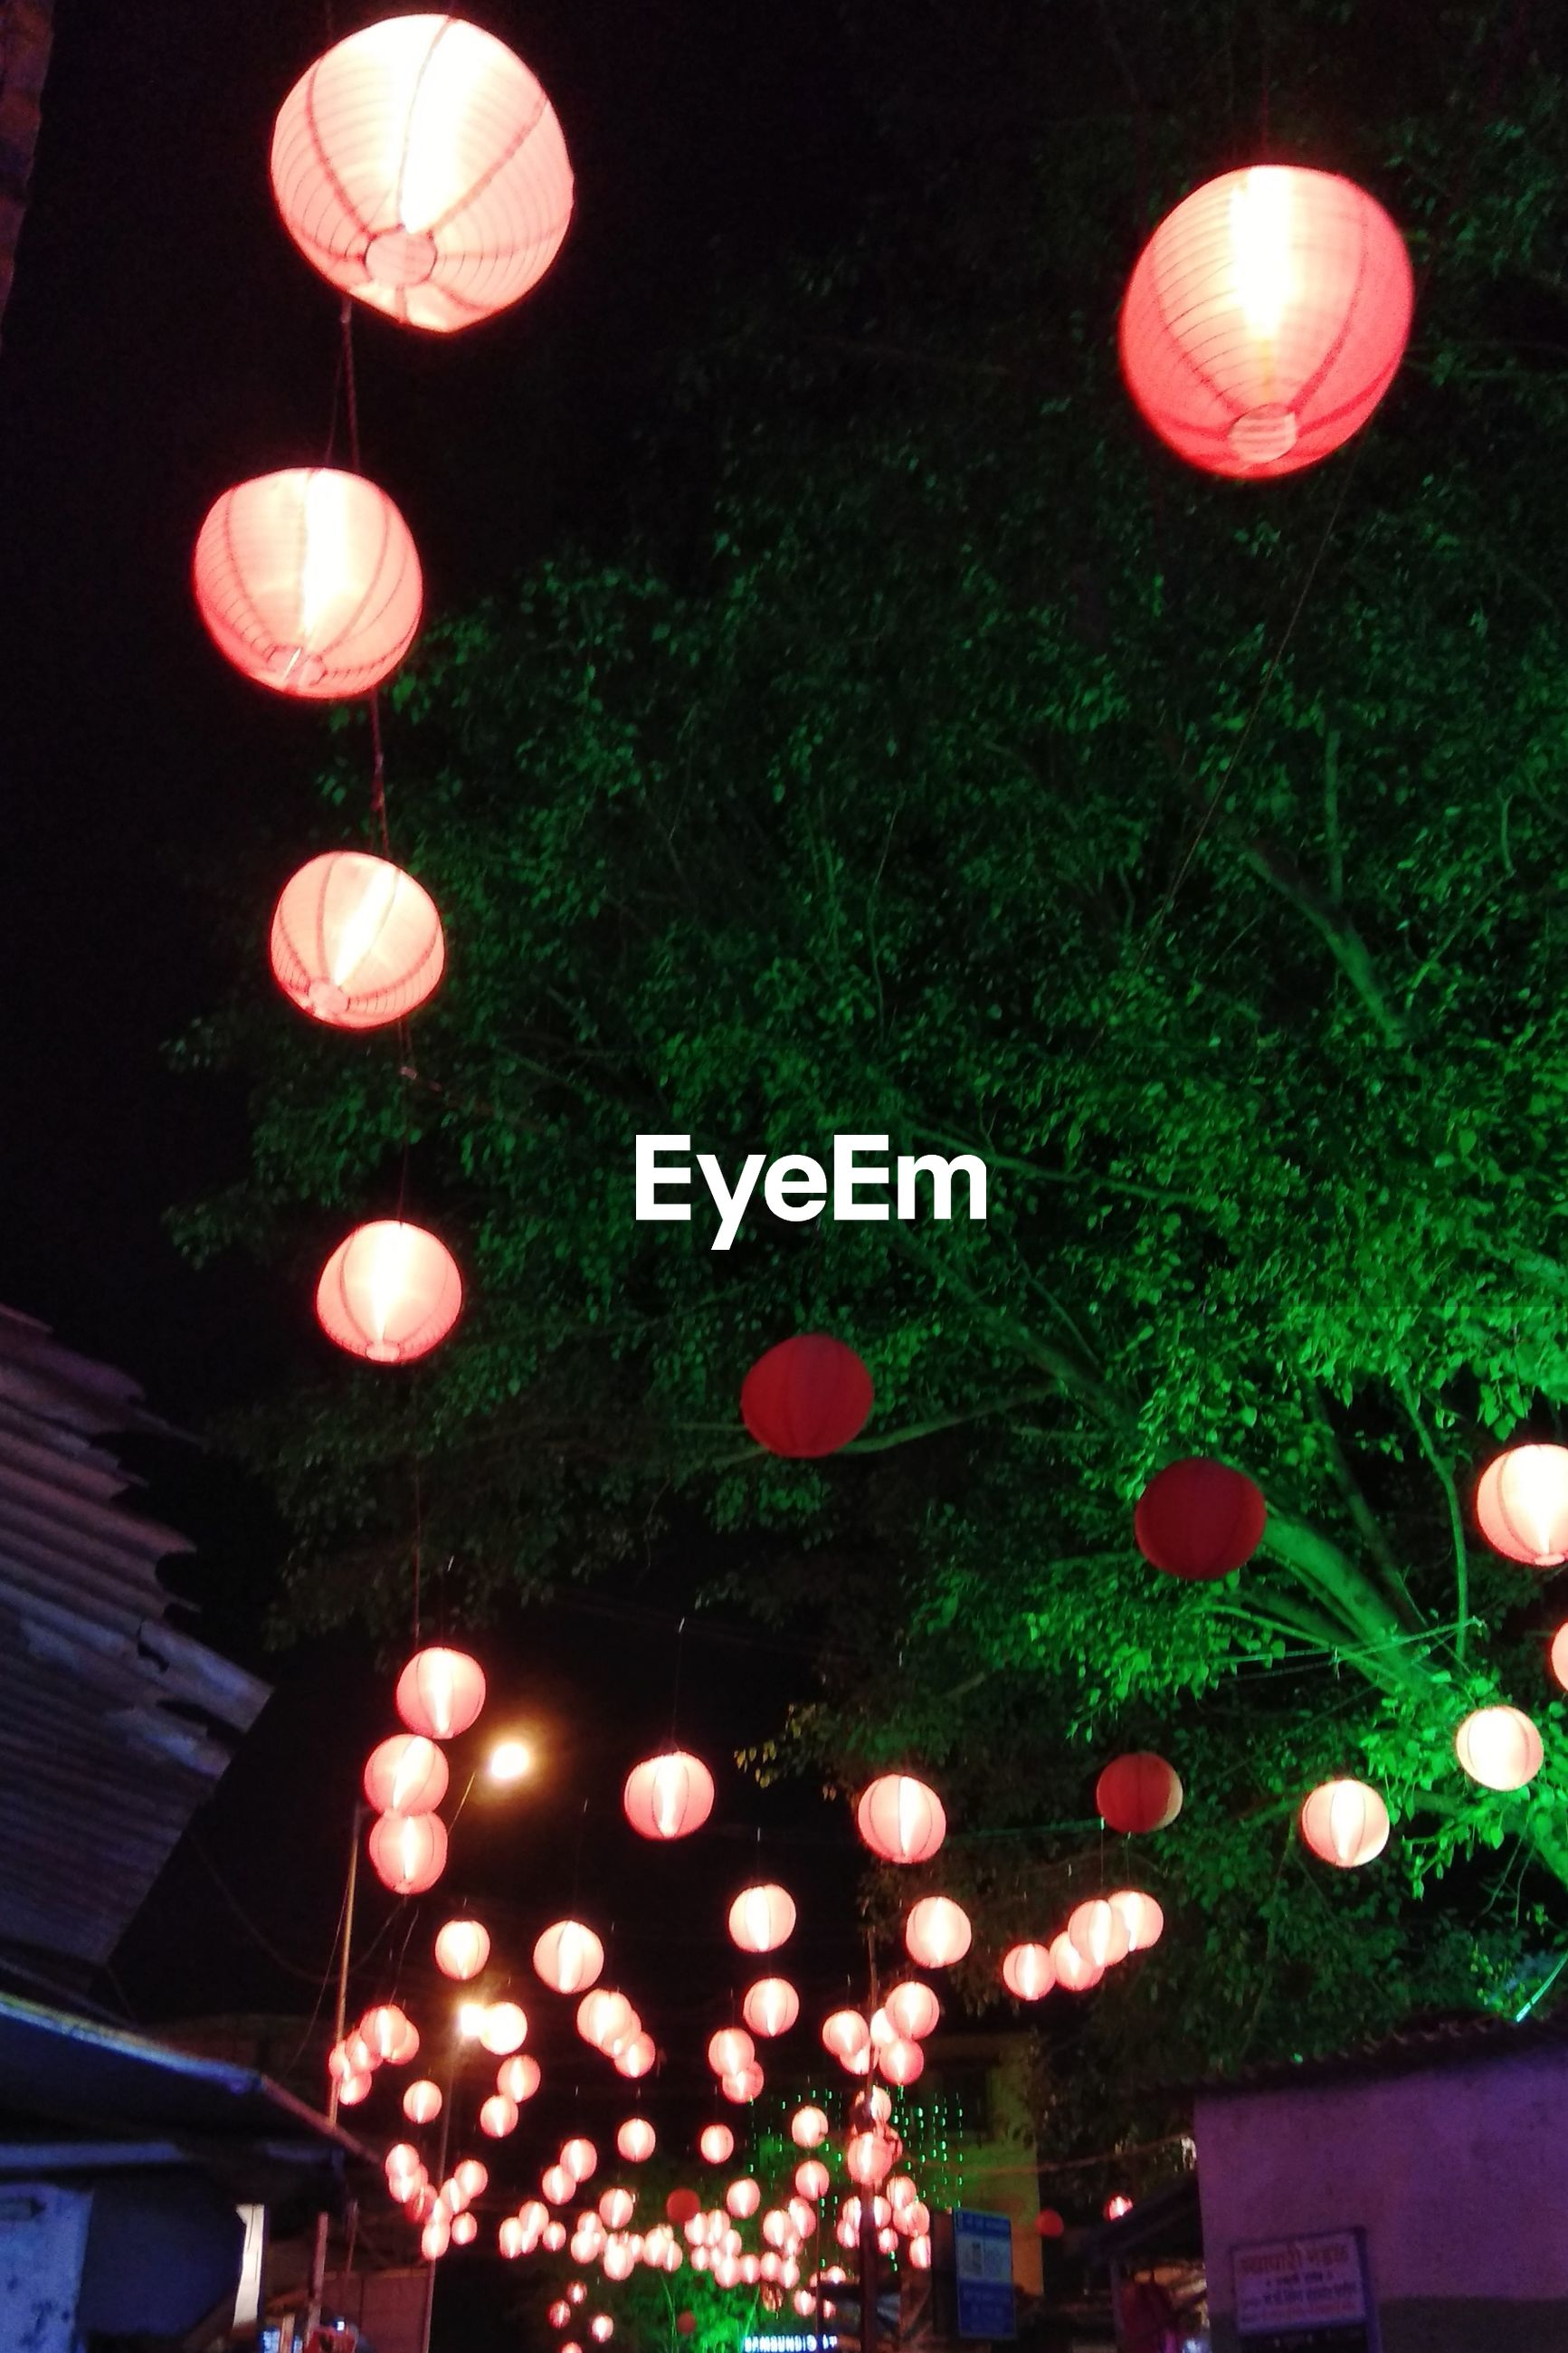 LOW ANGLE VIEW OF ILLUMINATED LANTERNS HANGING BY TREES